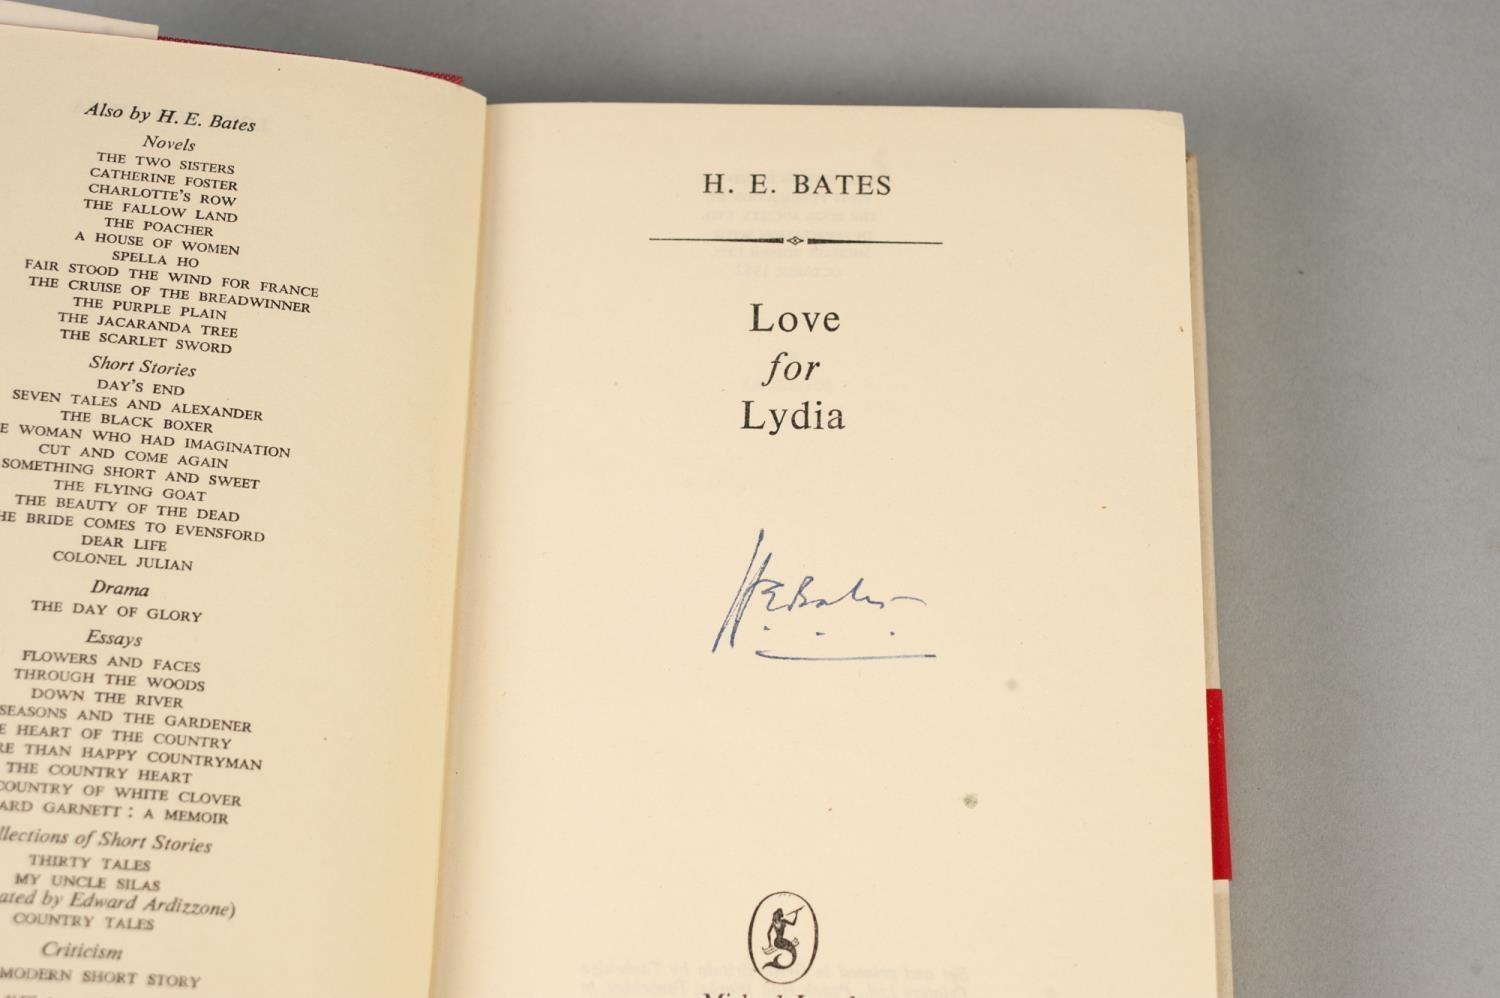 Lot 39 - SIGNED H E BATES TITLES to include Fair Stood the Wind for France (1949), The Purple Plain (